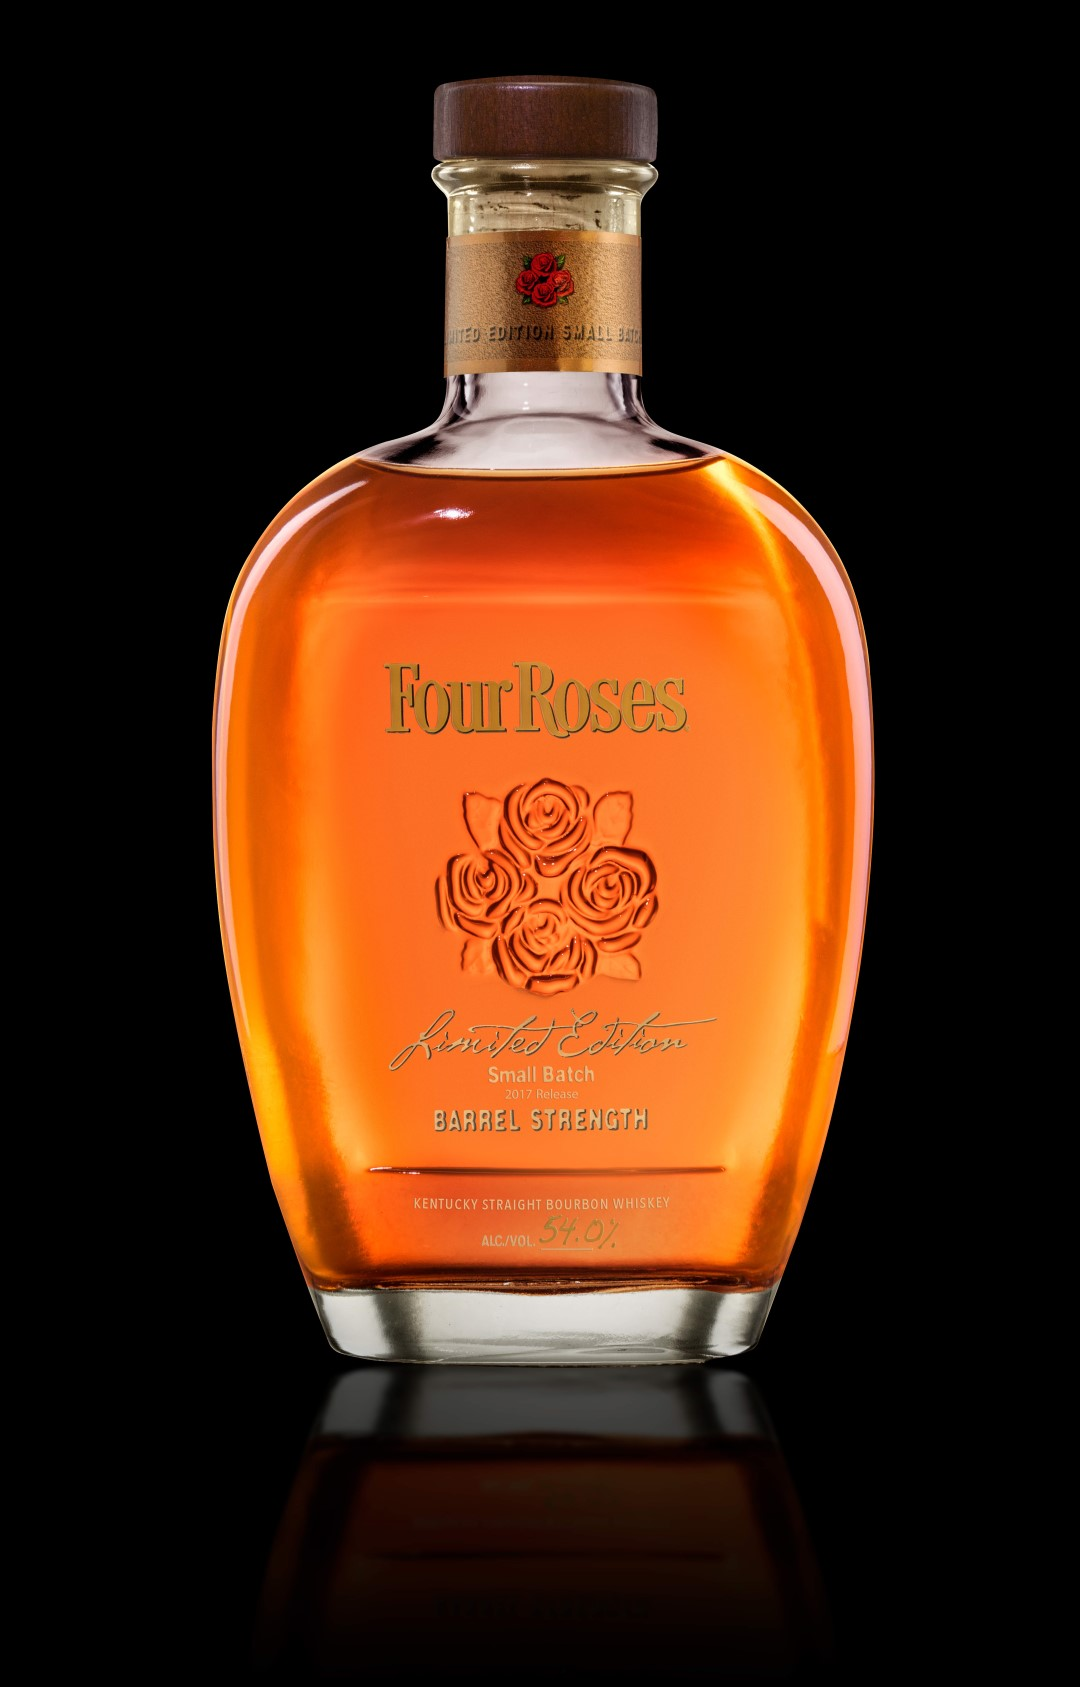 Four Roses Limited Edition Small Batch Bourbon 2017 Edition